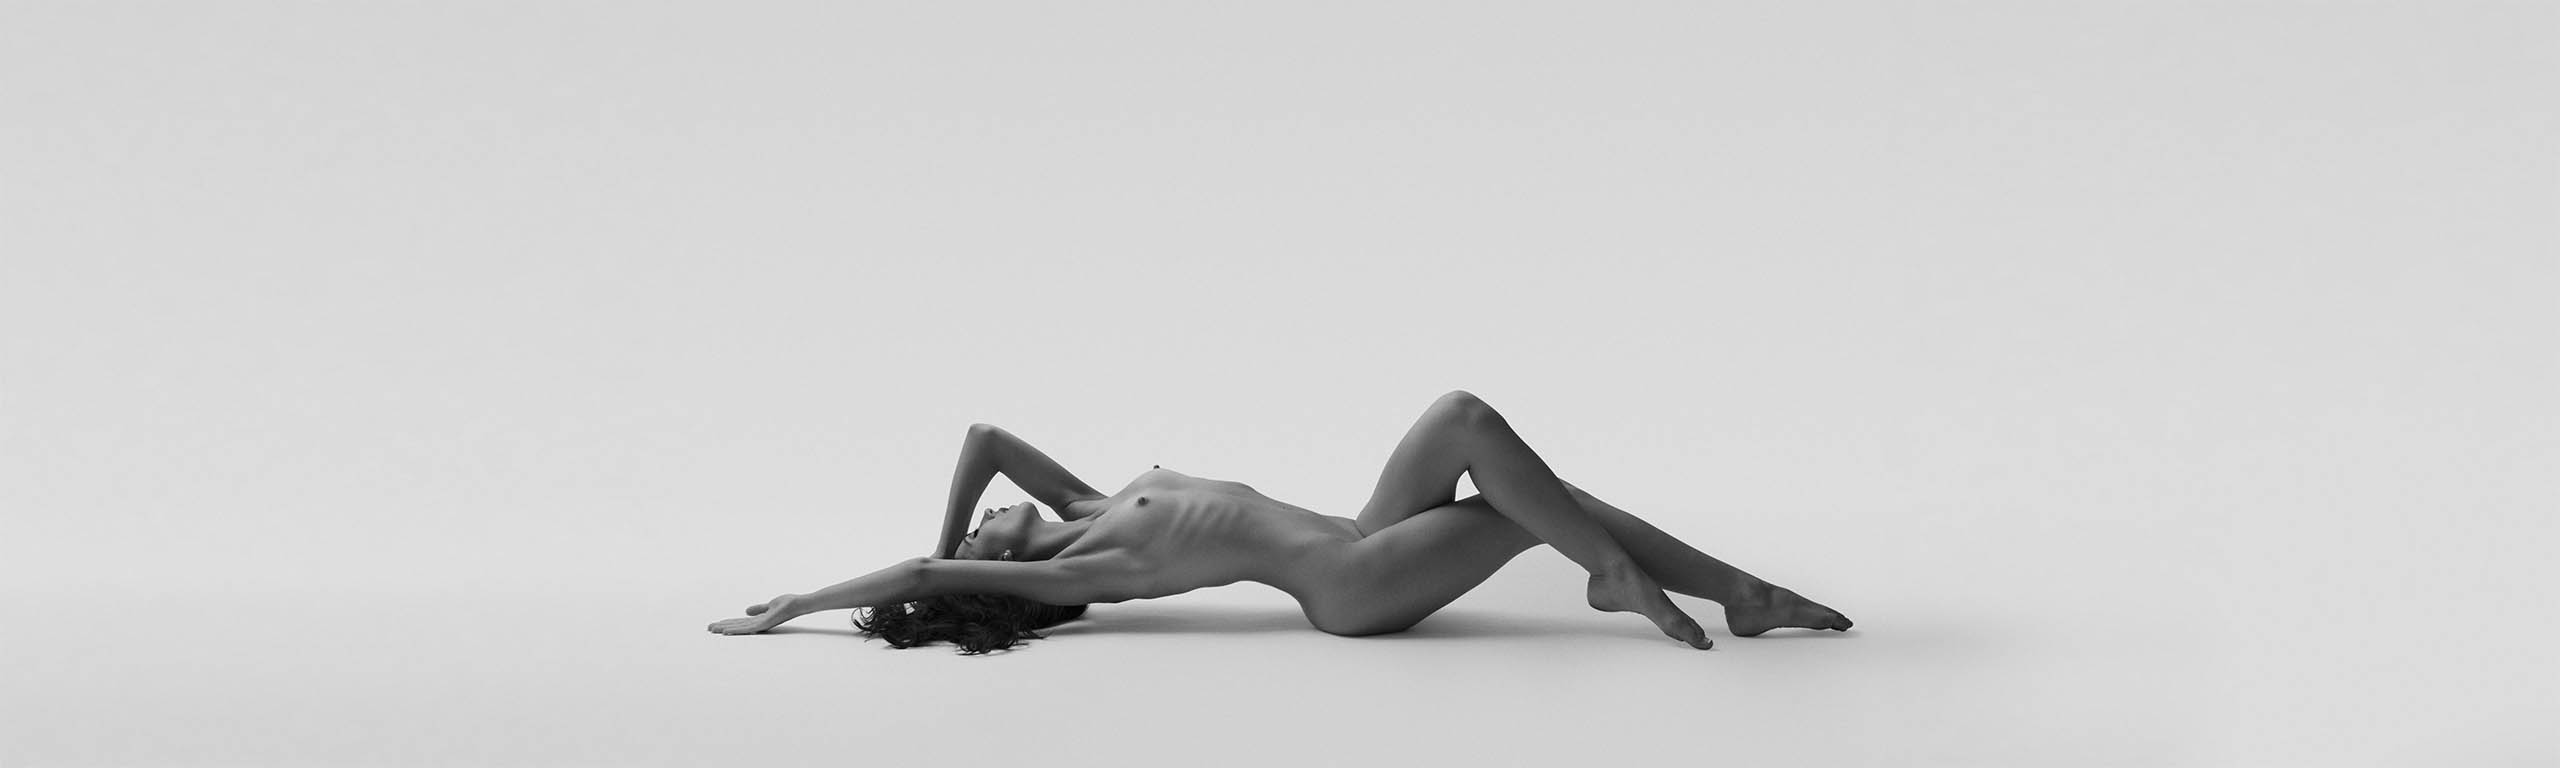 Nude woman art photography